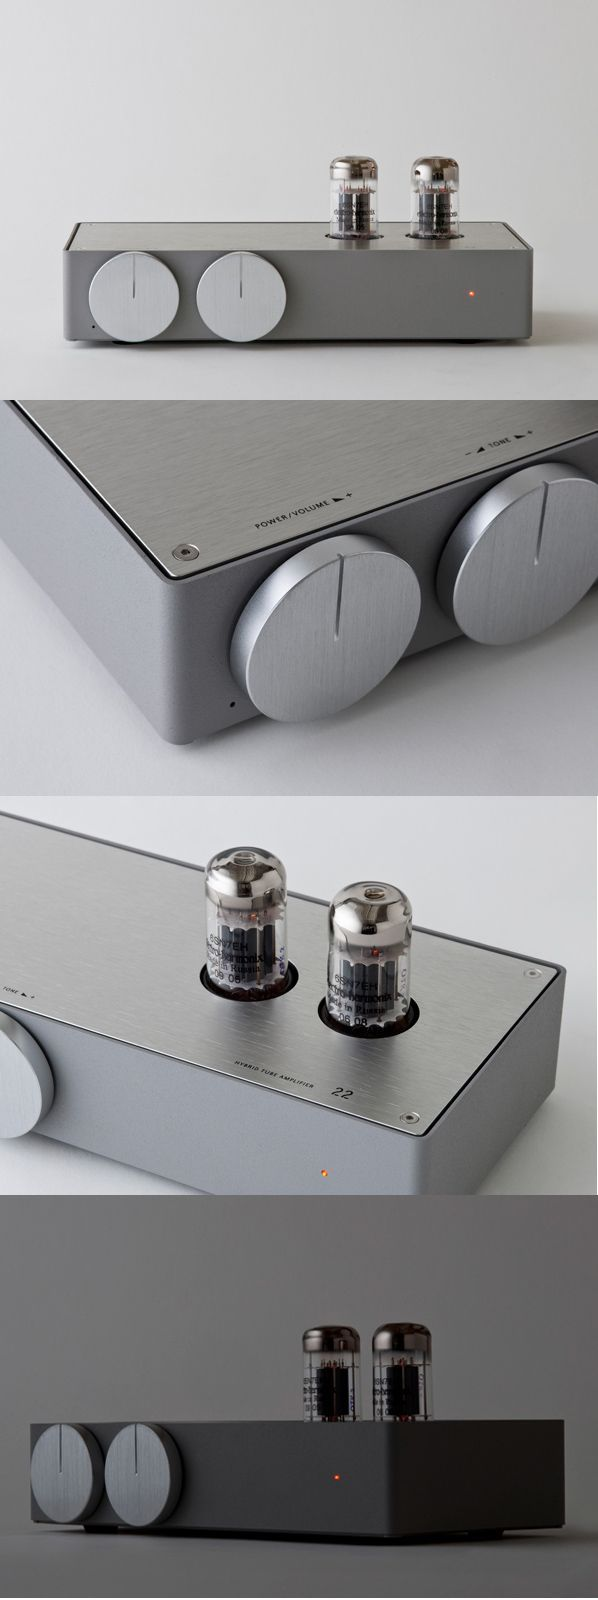 A brand-new tube amplifier from Japan.